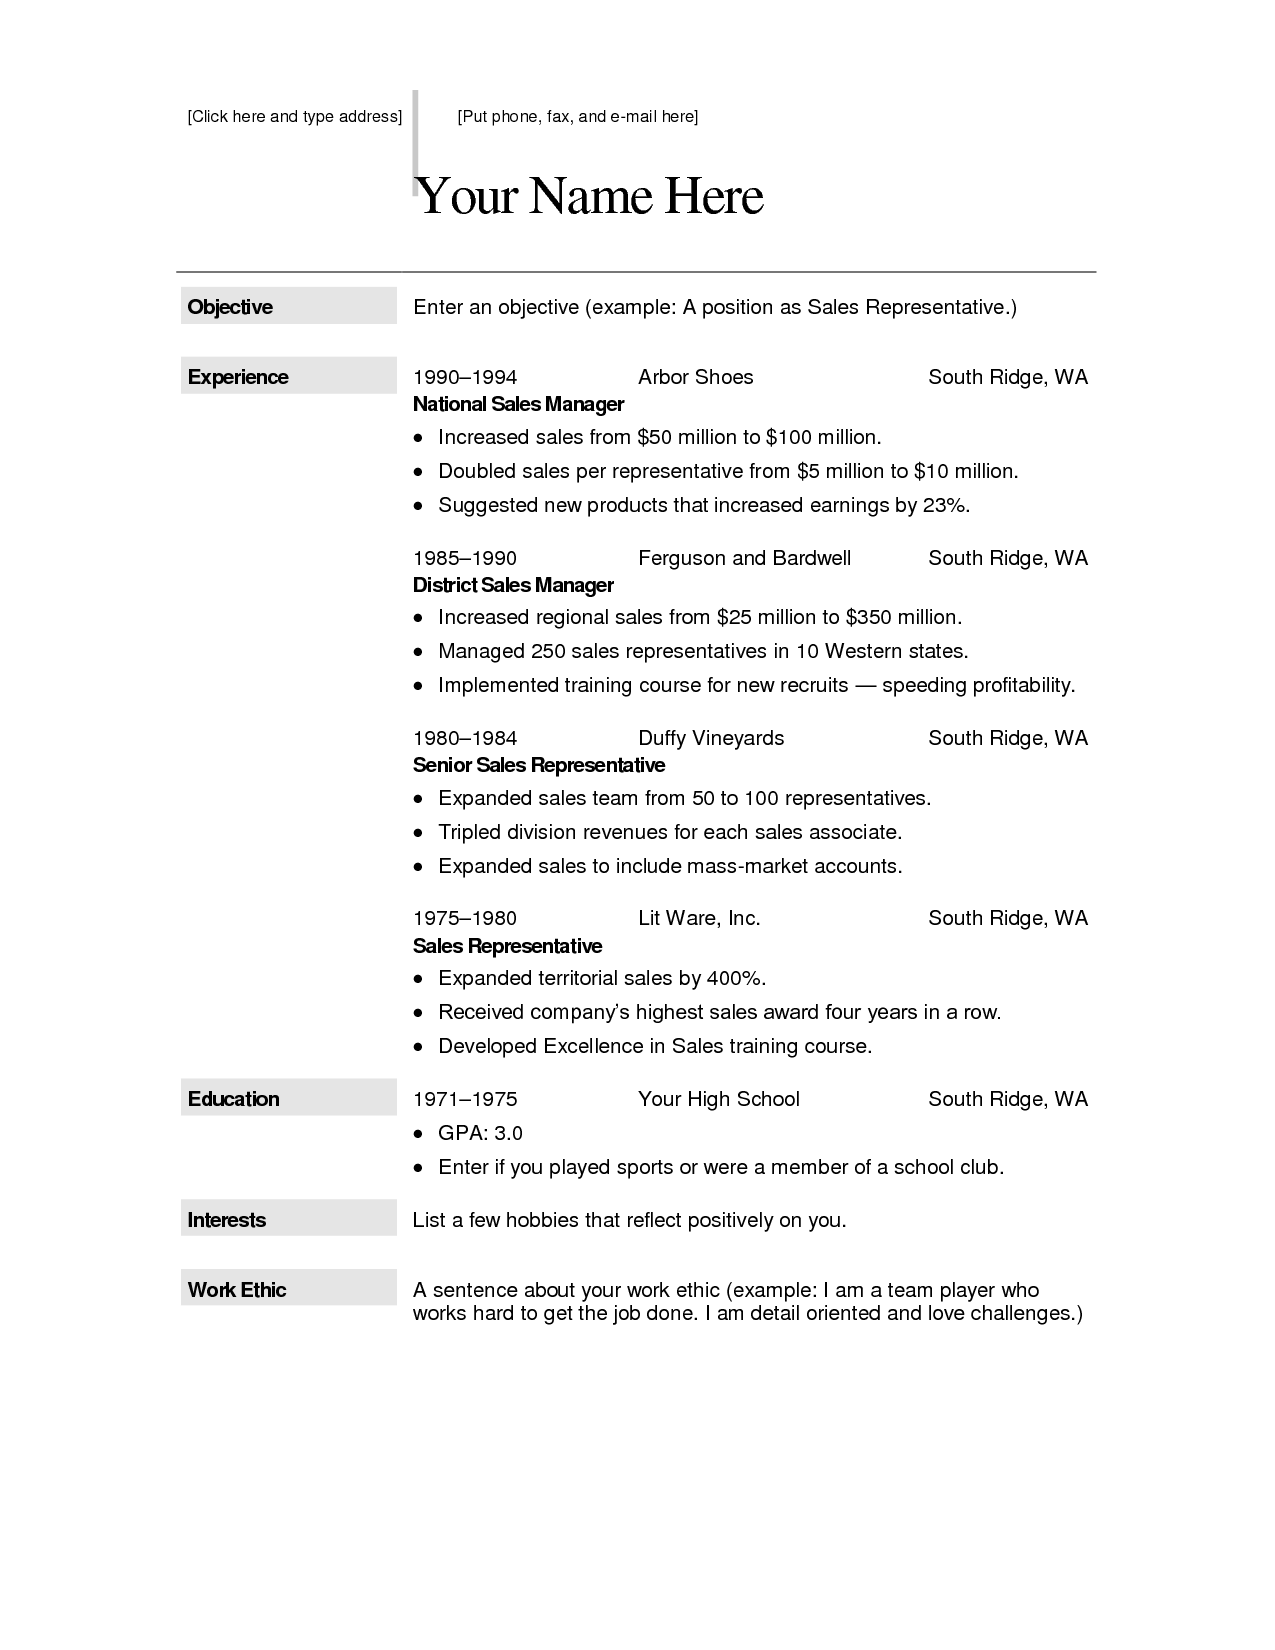 free creative resume templates for macfree creative resume templates for mac modern resume template - Mac Pages Resume Templates